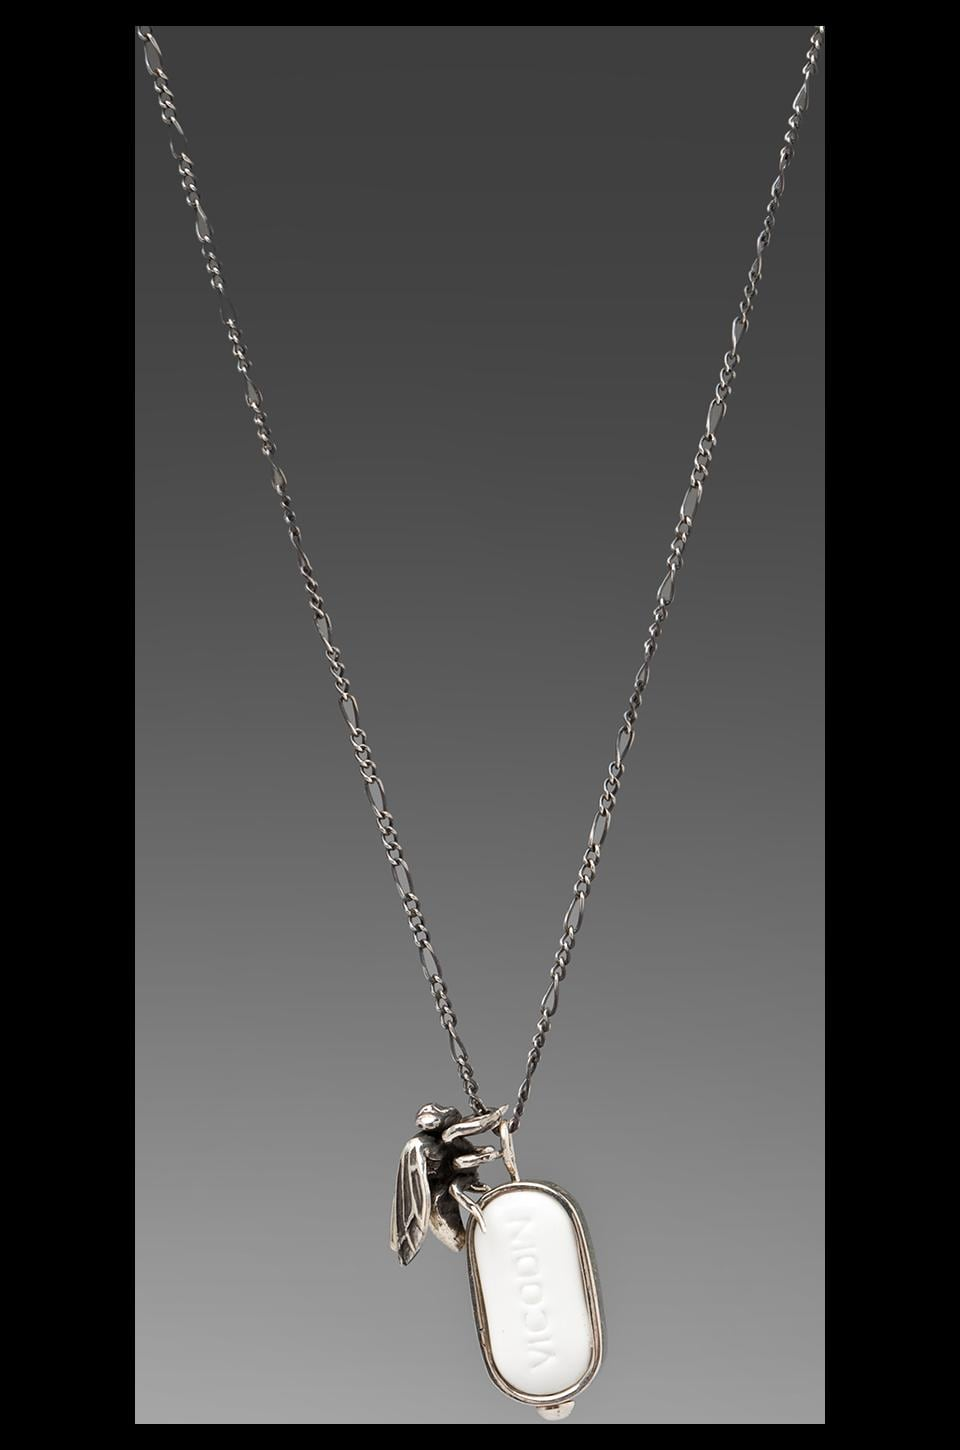 Cast of Vices Ups & Downs/You Again Combo Necklace in Silver Vicodin